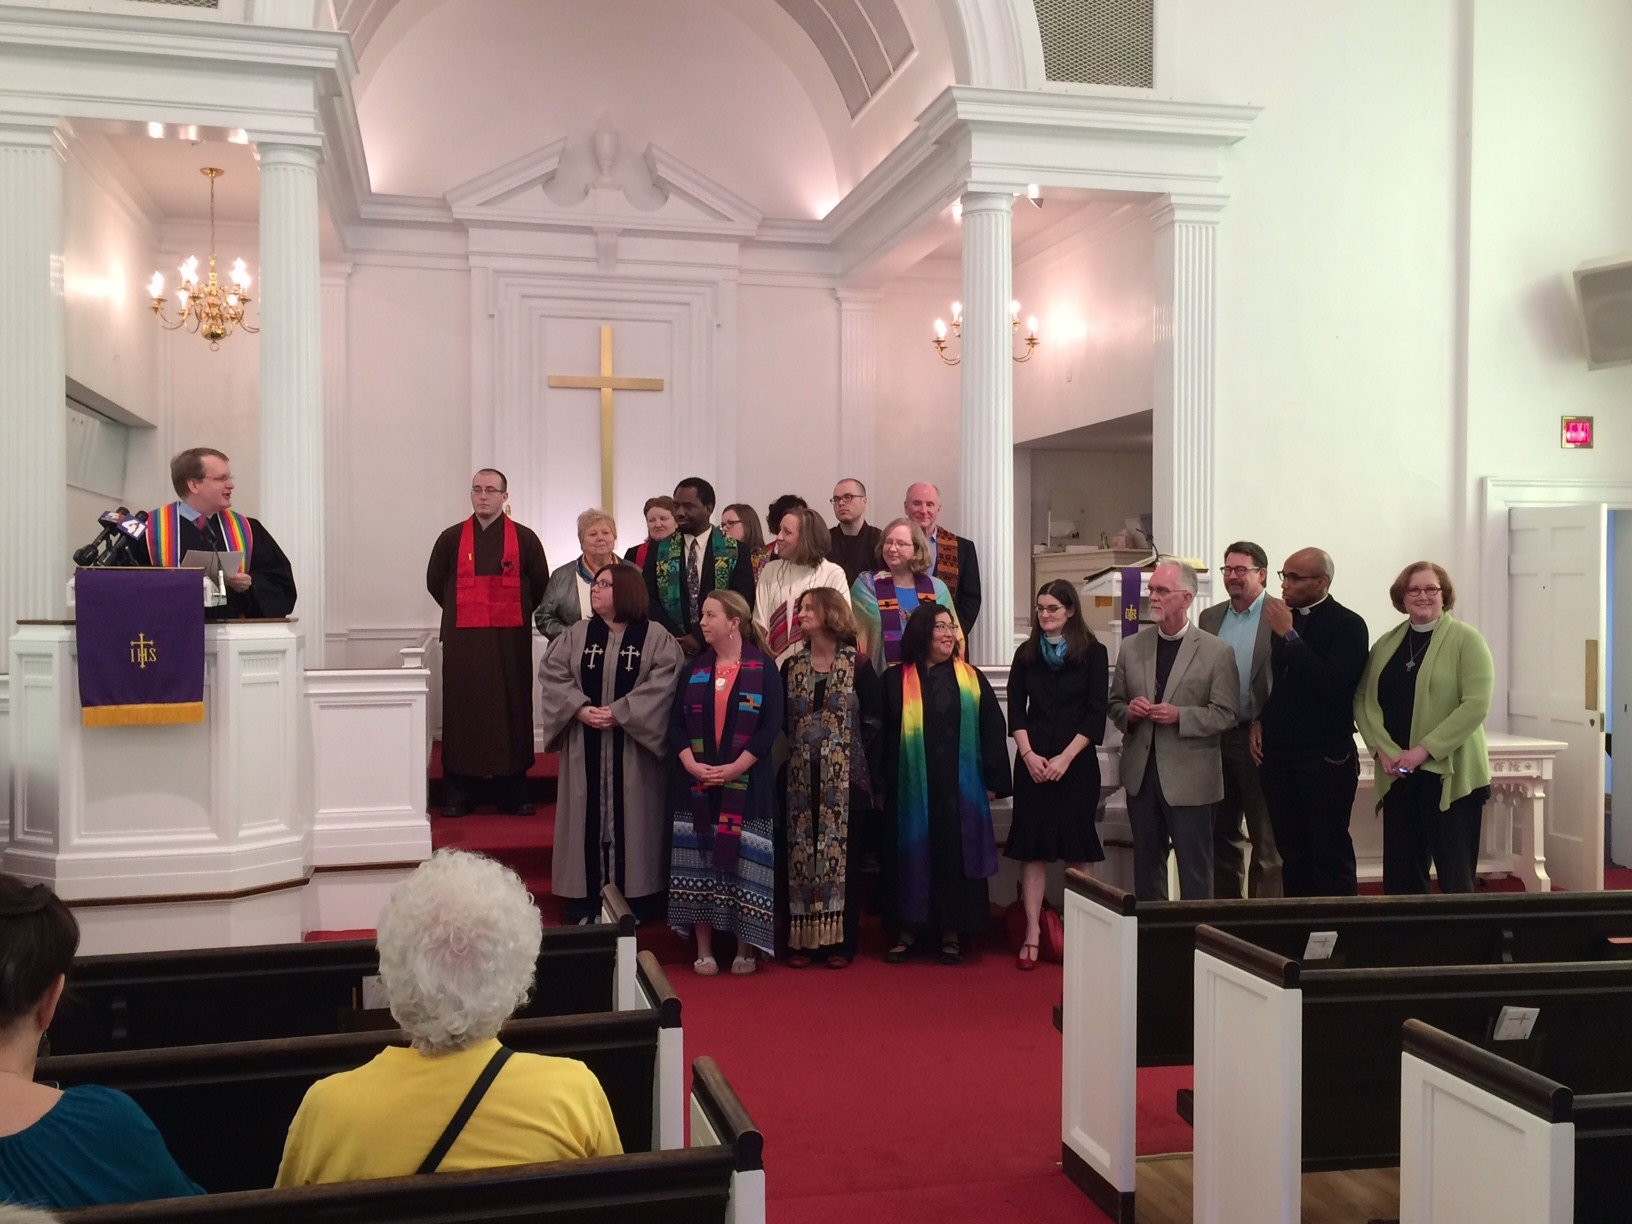 Nearly 20 clergy from several different faiths stood together Wednesday afternoon, taking a stand against Senate Joint Resolution 39. (Dwain Crispell/KCTV)